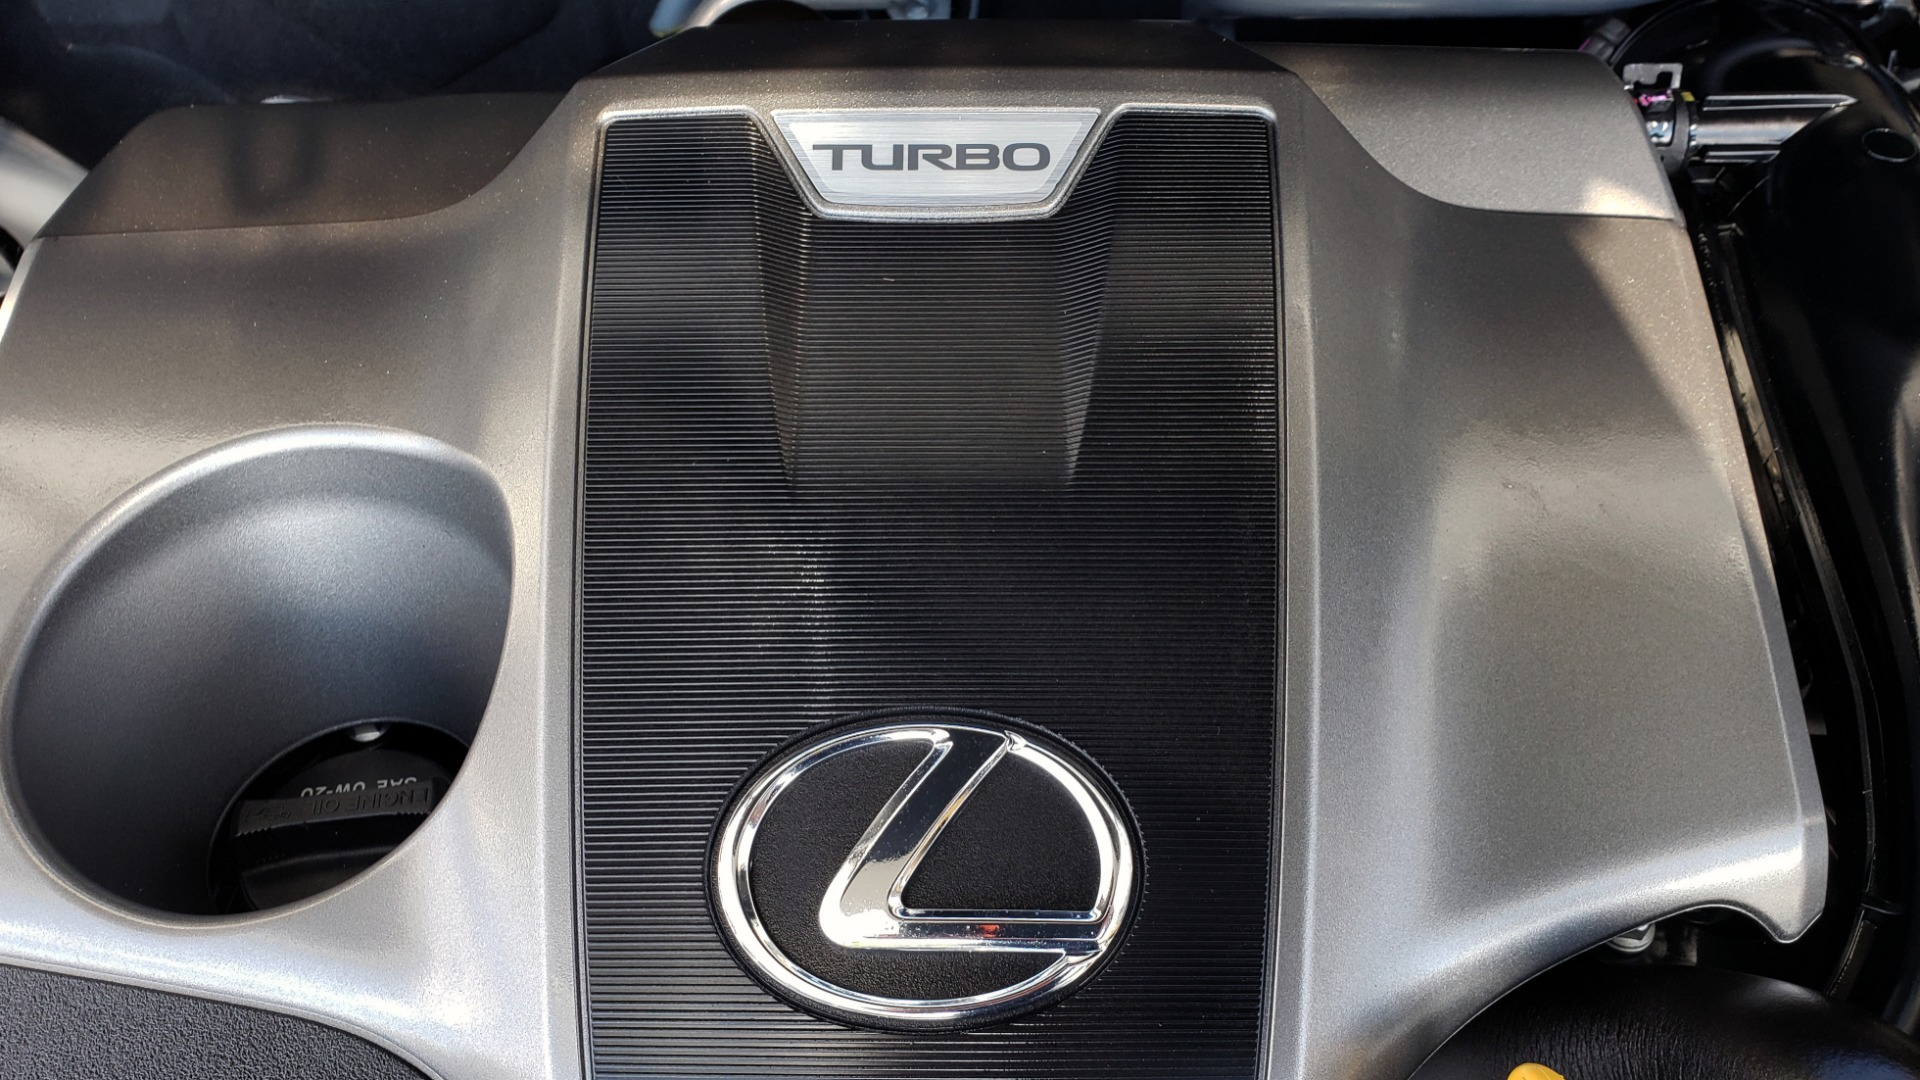 Used 2019 Lexus NX 300 F-SPORT / 2.0L TURBO / LEATHER / 18IN WHEELS / REARVIEW for sale $31,195 at Formula Imports in Charlotte NC 28227 15